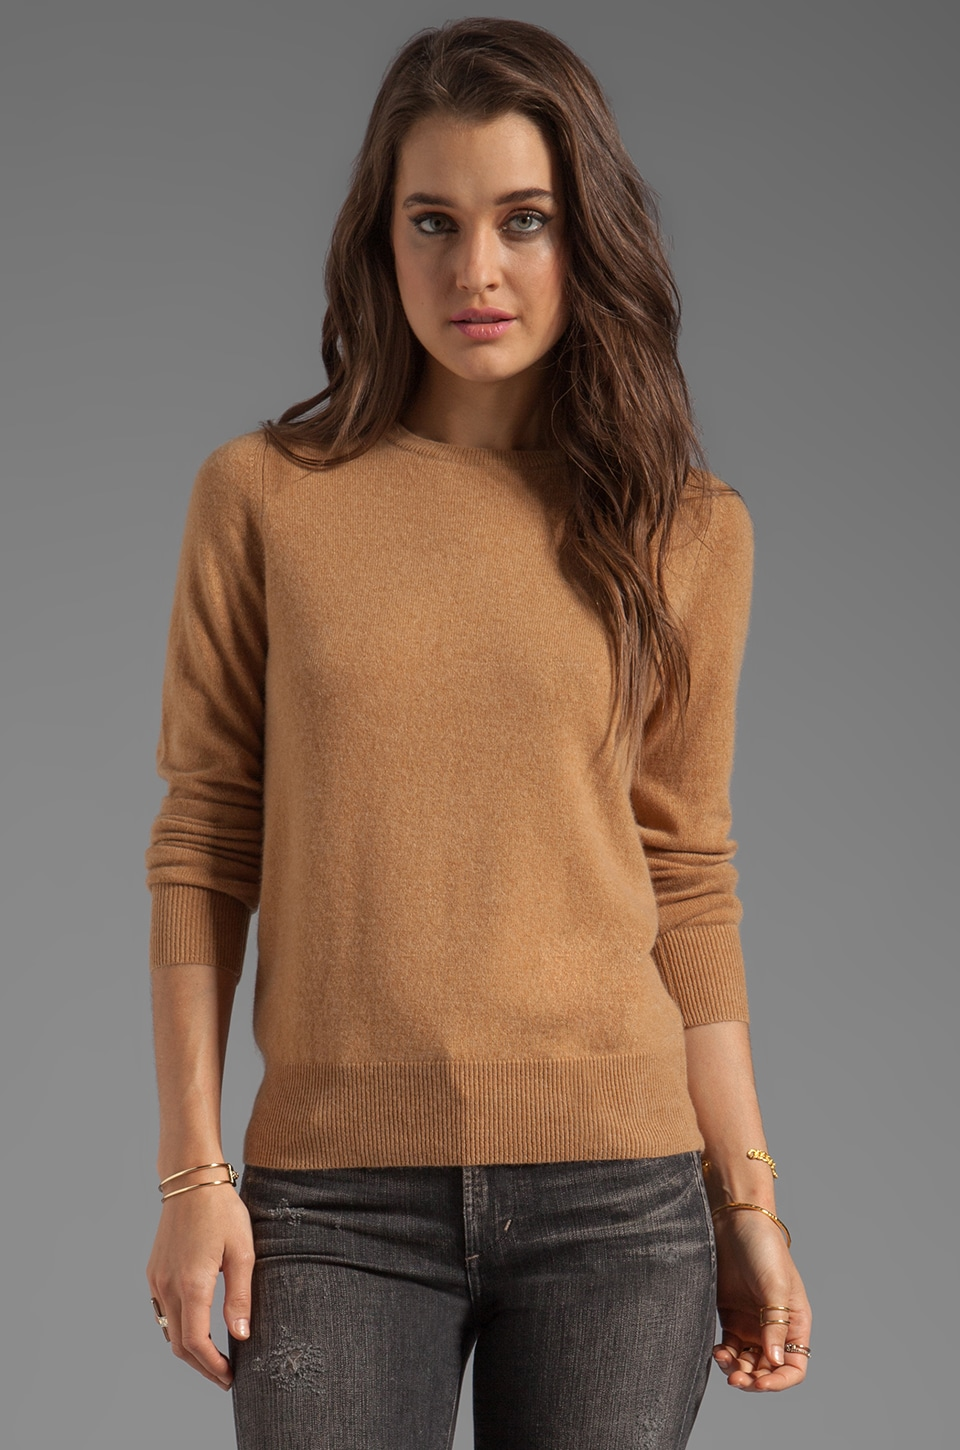 DemyLee Joie Cashmere Elbow Patch Sweater in Camel